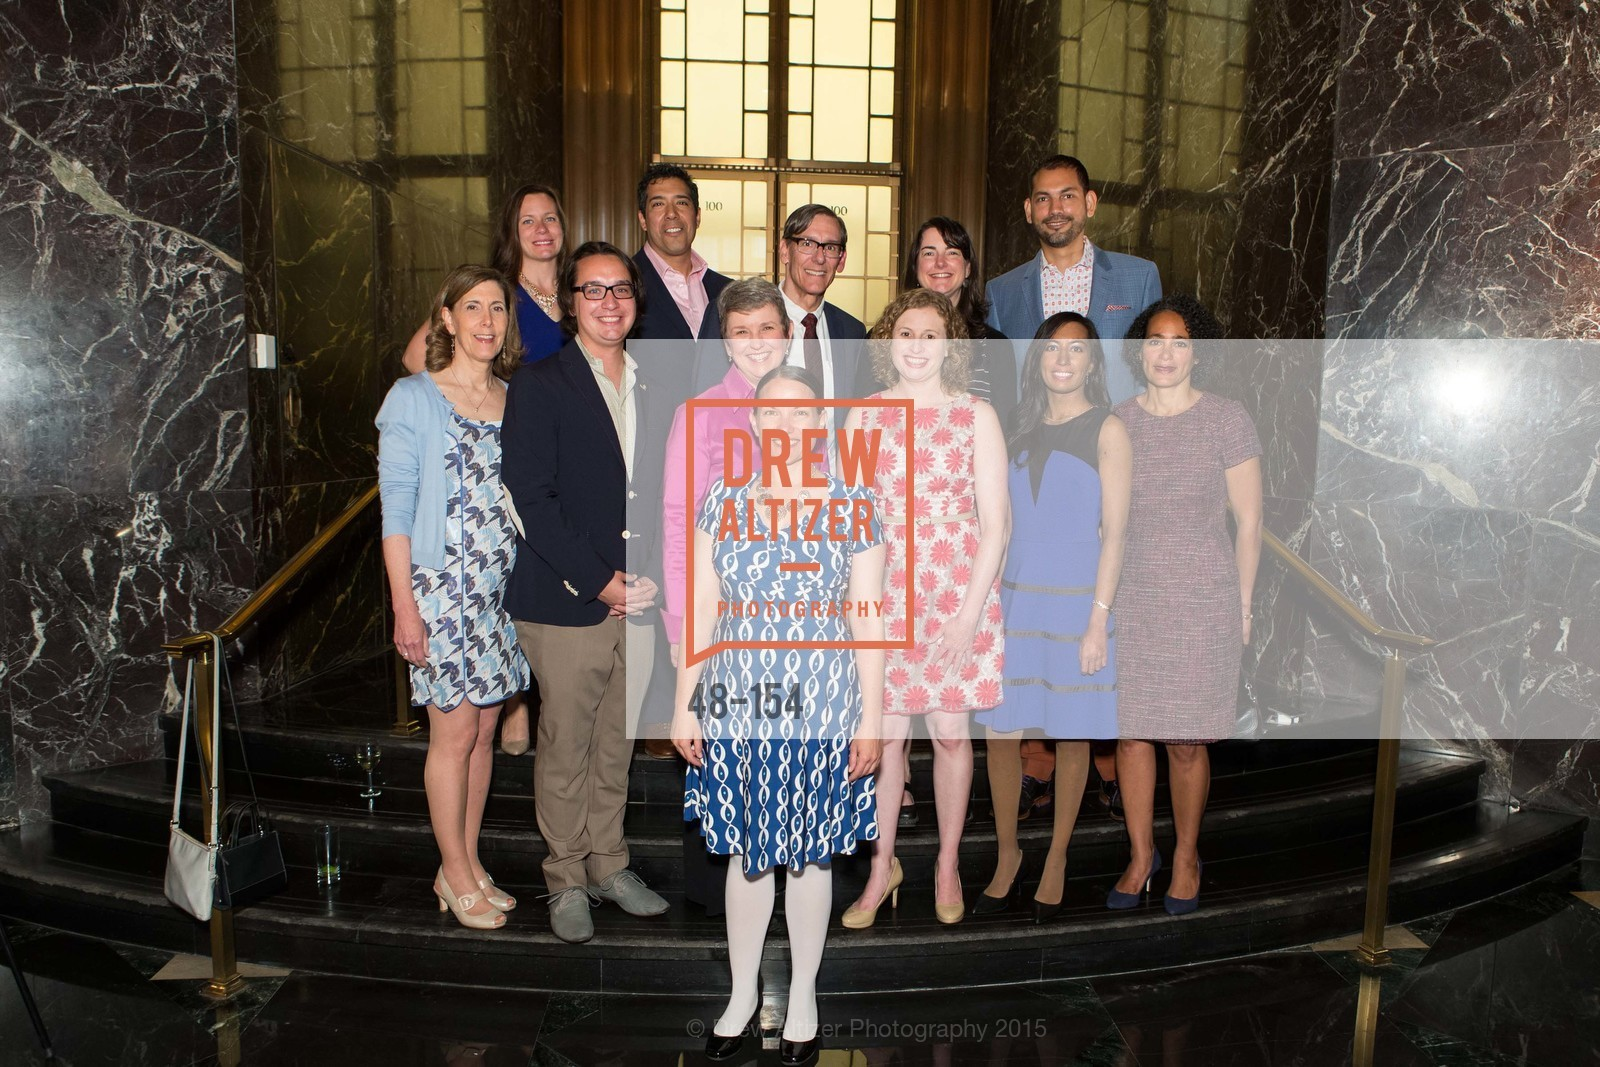 Micki Klearman, Kathy Wiseman, Christopher Wiseman, Alex Rivera, Connie Norton, Chip Supanich, Colleen McCarthy, Ernesto Quintanilla, Bristelle Hunte, Double Down for Shanti, The City Club. 155 Sansome Street, June 6th, 2015,Drew Altizer, Drew Altizer Photography, full-service agency, private events, San Francisco photographer, photographer california